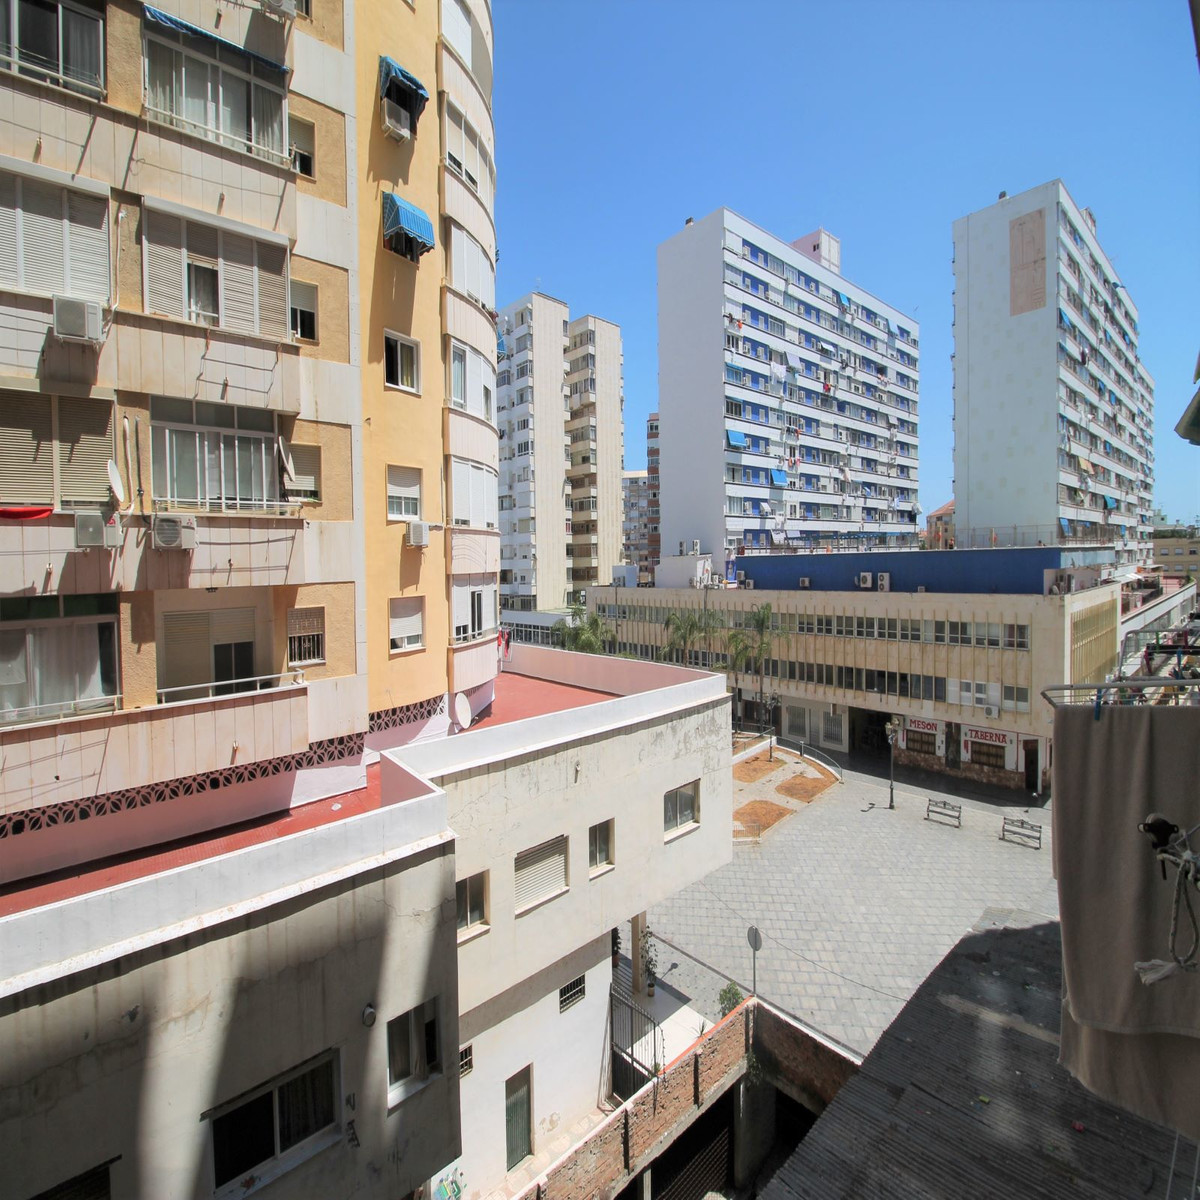 BANK REPOSSESSION AND 100 % MORTGAGE AVAILABLE! APARTMENT IN TORREMOLINOS - MALAGA. PRICED TO SELL B,Spain